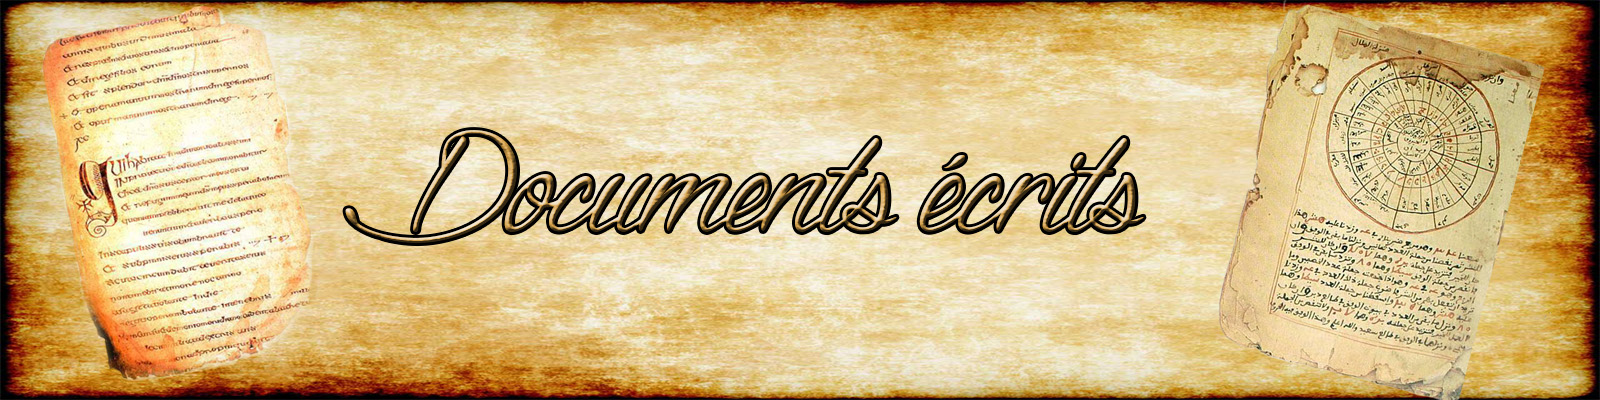 Writtendocuments_Banner